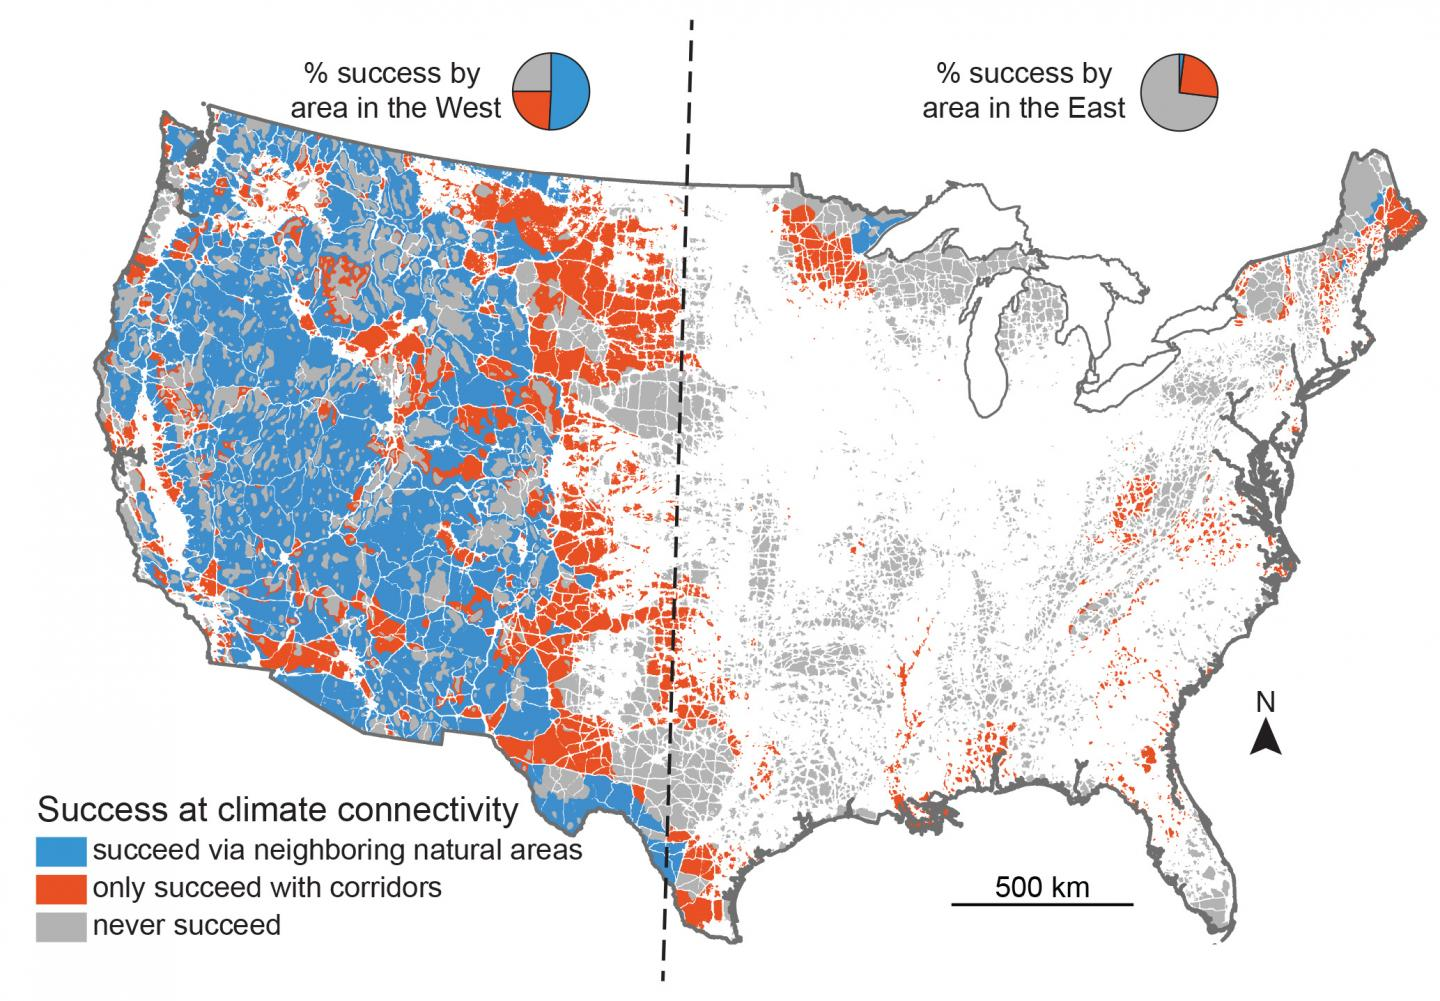 Map shows the regions of the United States from which plants and animals will be able to escape predicted climate change. Blue areas are where they will be able to succeed given current conditions, orange areas are where they will be able to succeed only if they are able to cross over human disturbed areas, and gray areas are areas where they cannot succeed by following climate gradients. Credit: Jenny McGuire, Georgia Tech